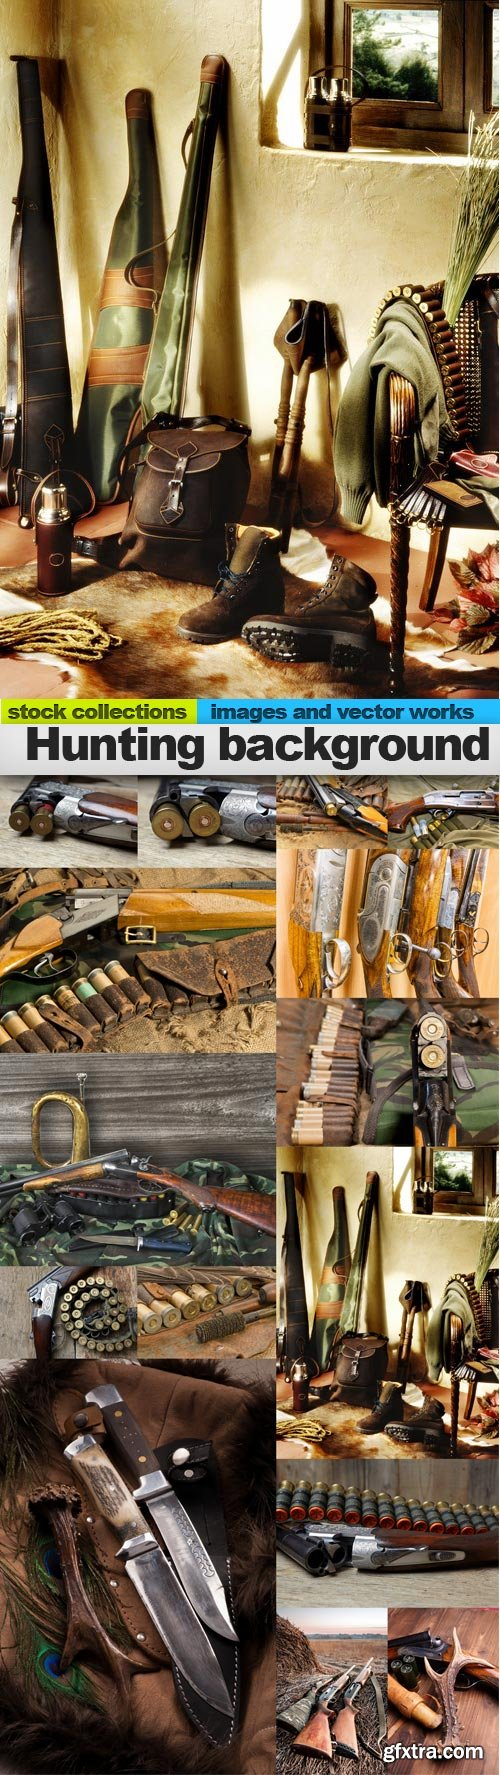 Hunting background, 15 x UHQ JPEG